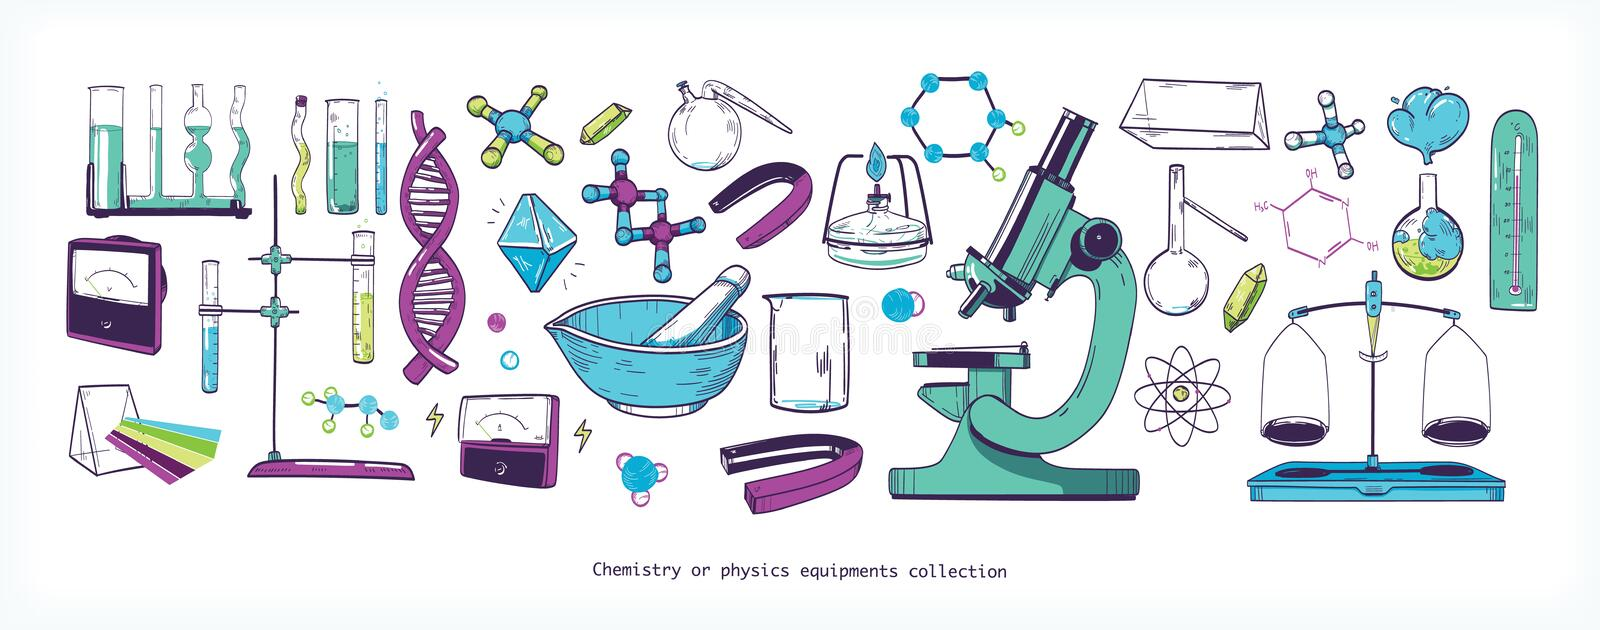 Set of chemistry and physics laboratory equipment and tools isolated on white background - microscope, test tubes and stock illustration